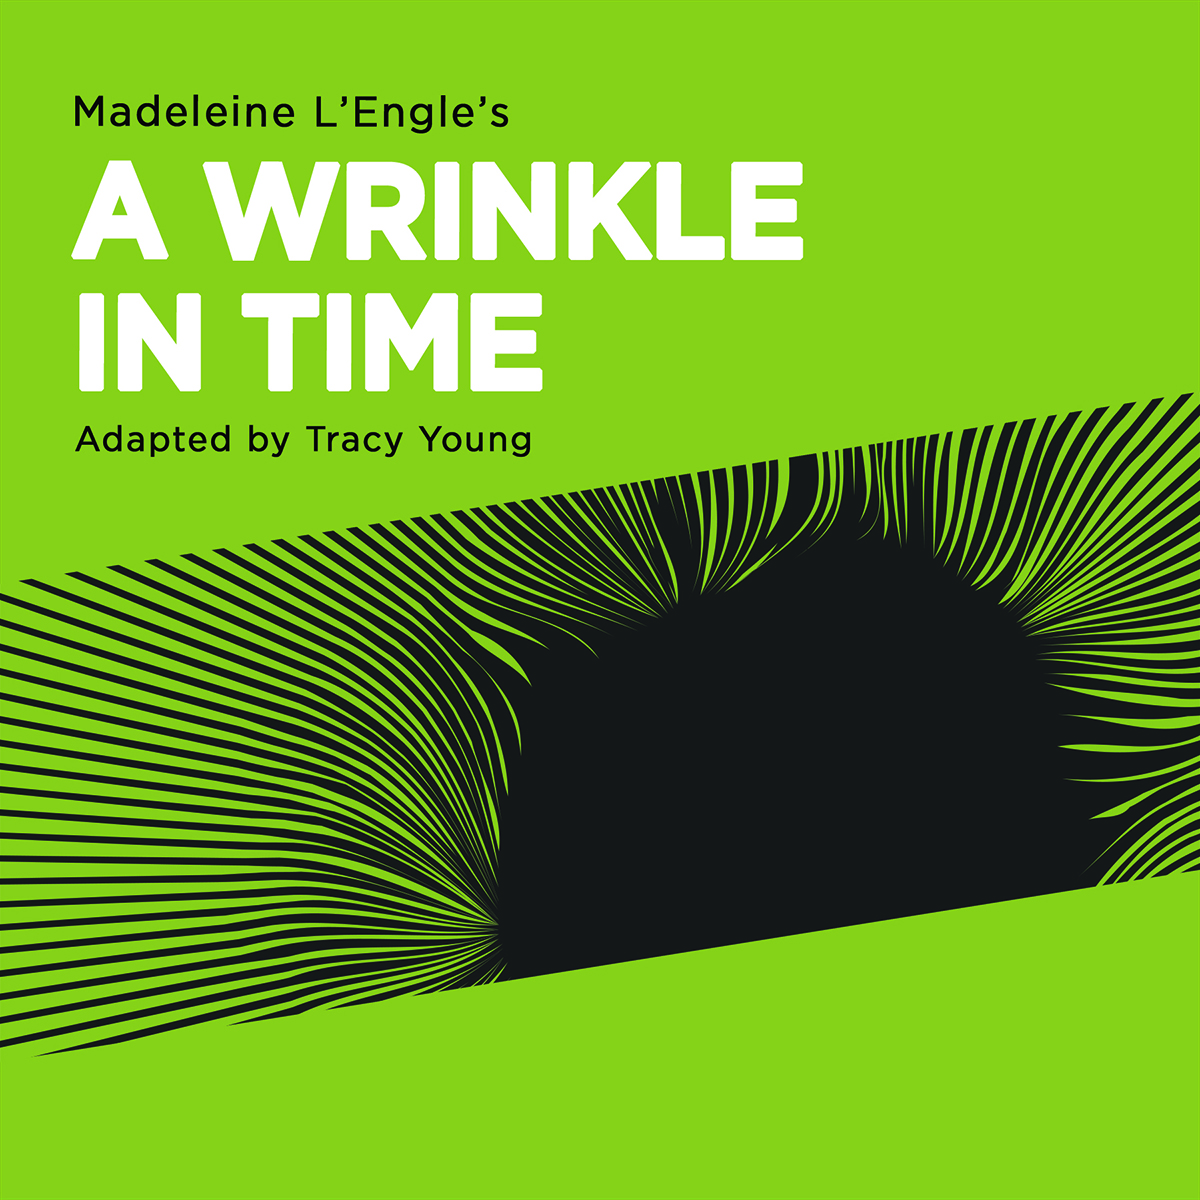 A Wrinkle in Time @ Arena Theatre